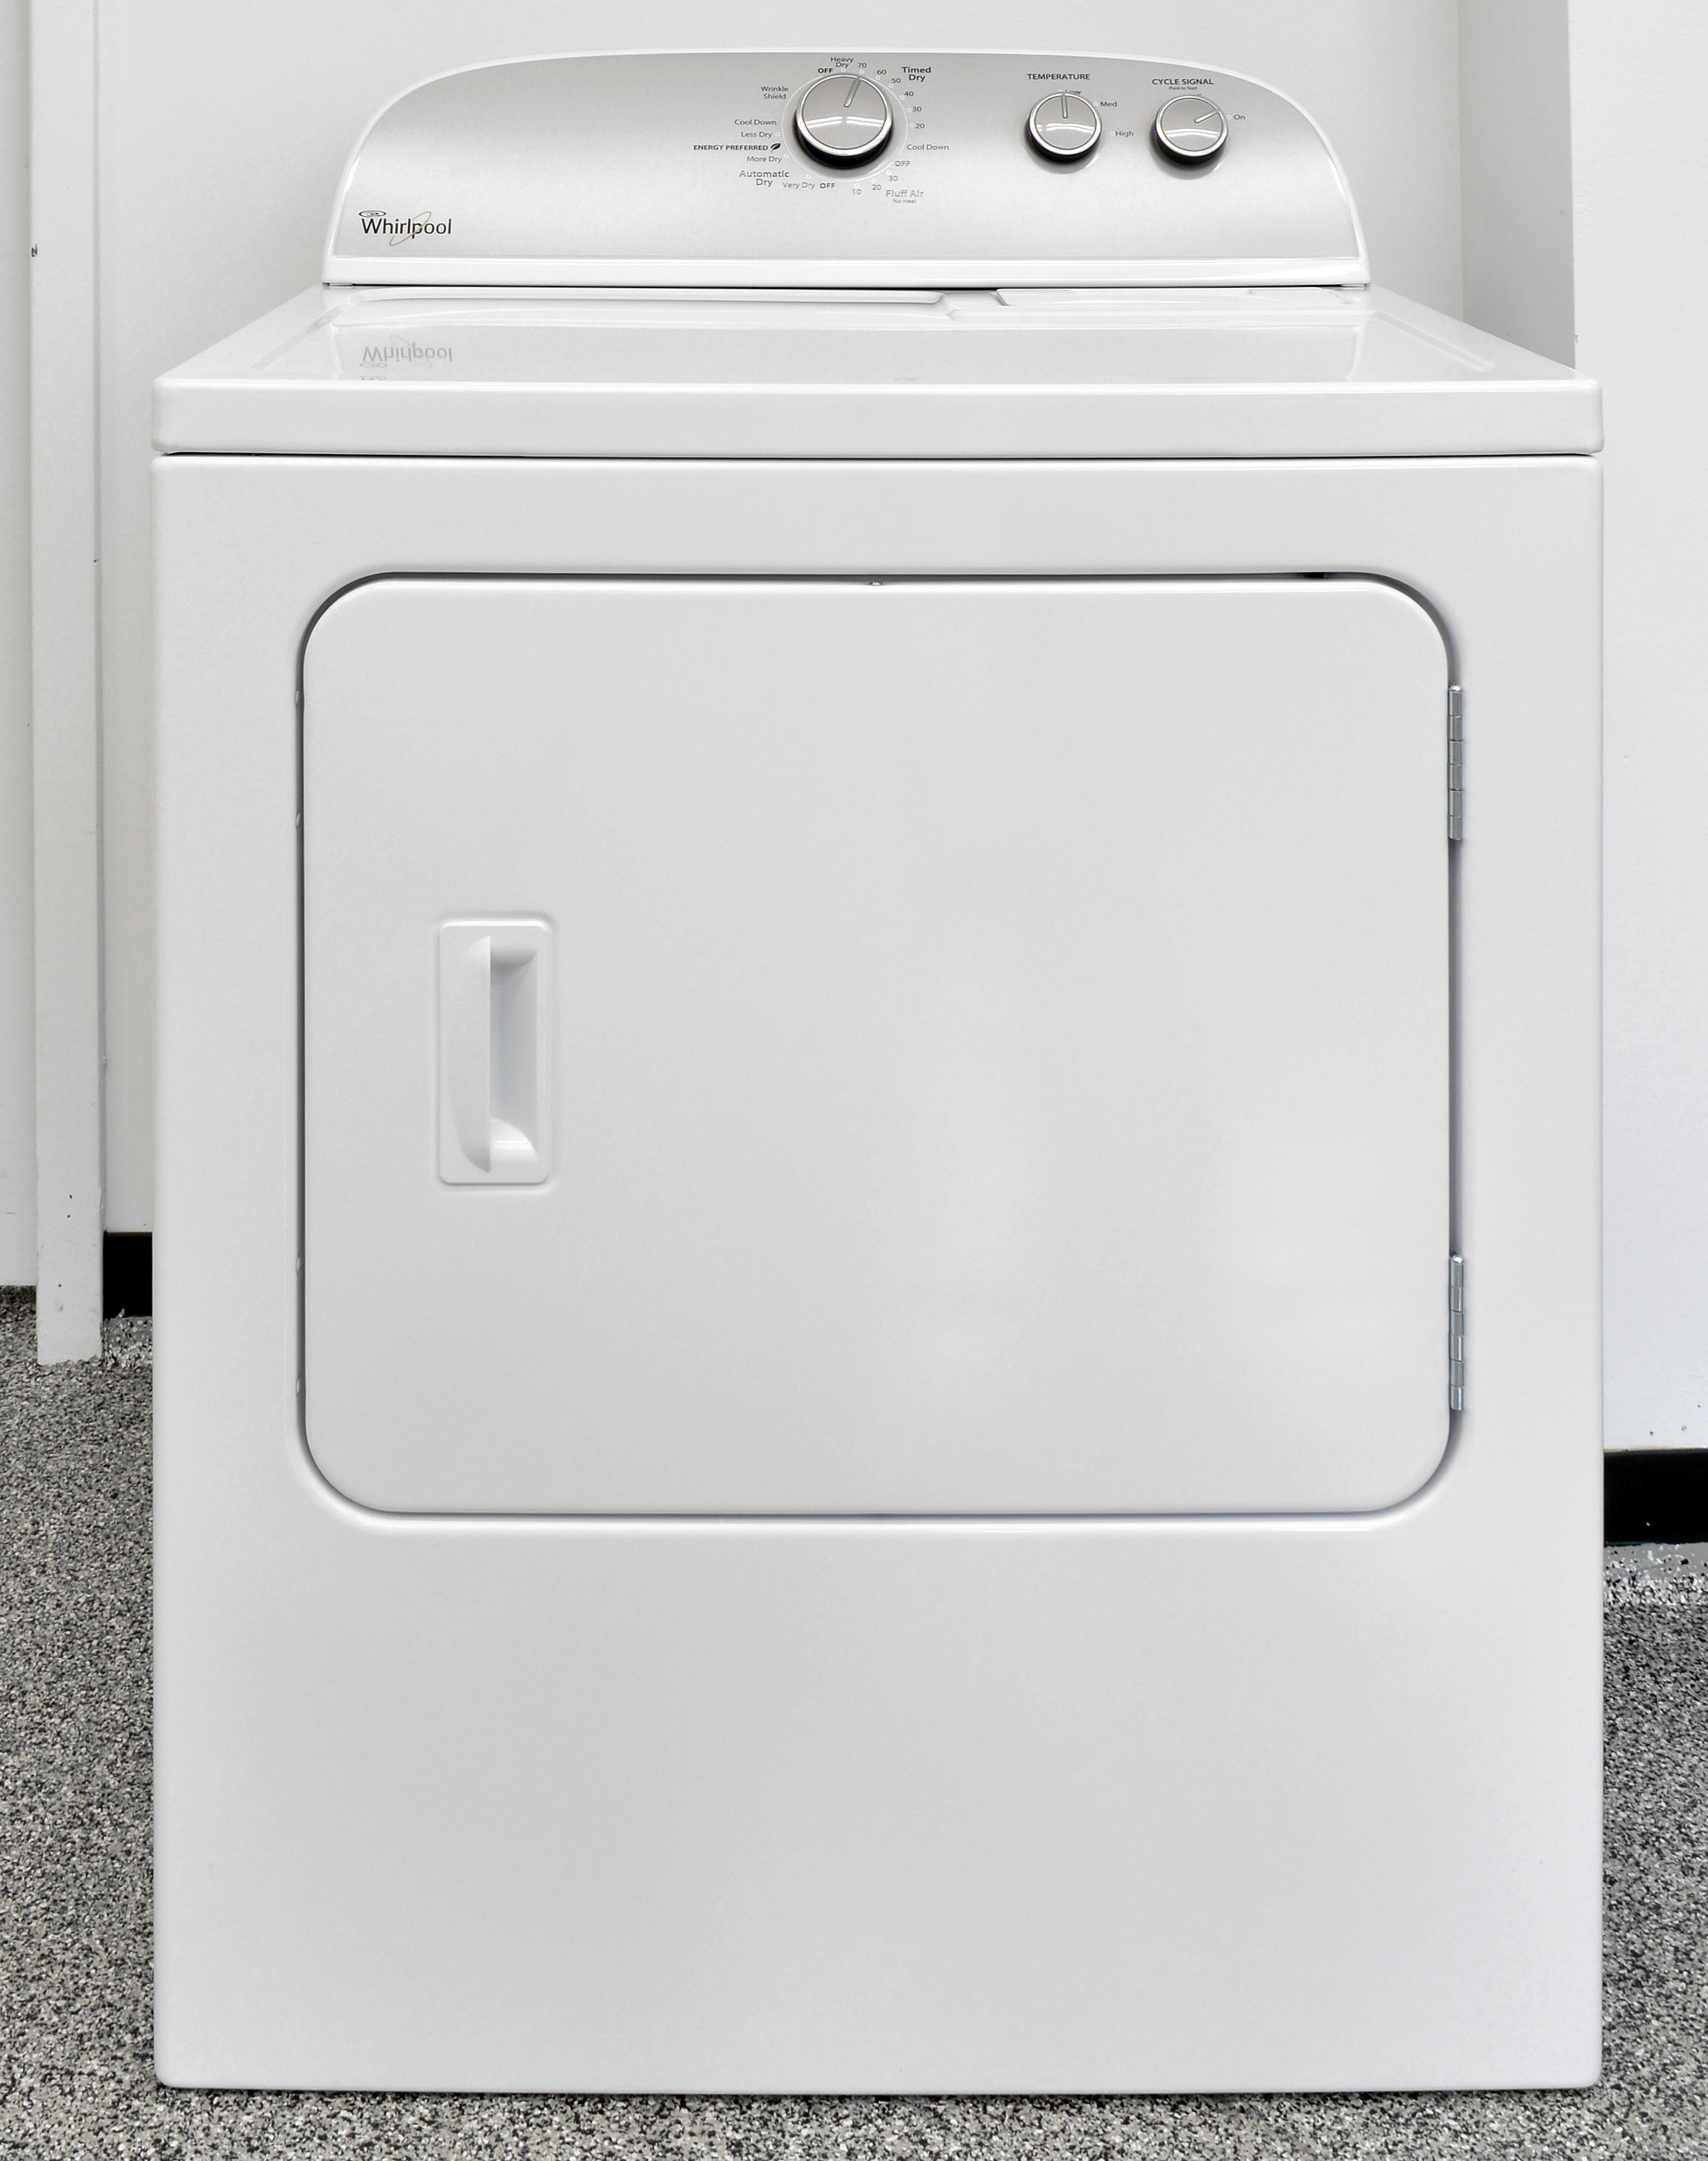 A standard white good, the basic Whirlpool WED4815EW is as straightforward as it gets.